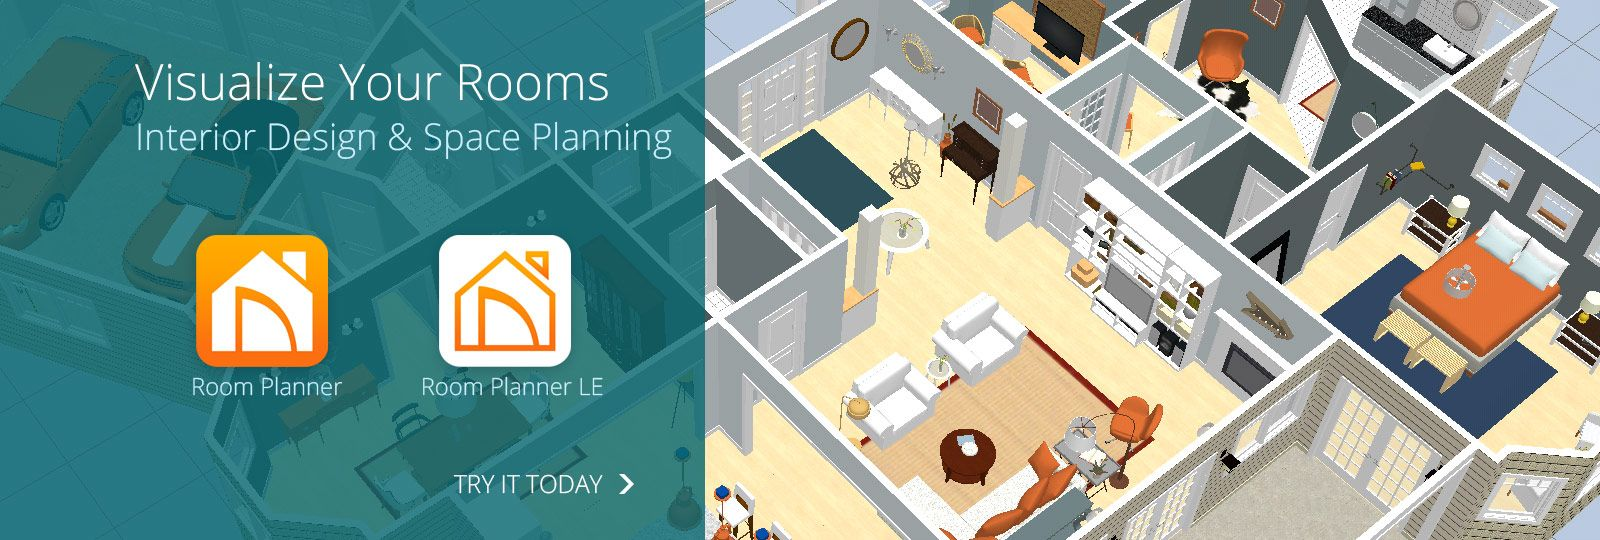 Home Design Planner Part - 25: Room Planner Home Design By Chief Architect   Apps   Pinterest   Room  Planner, Chief Architect And Planners